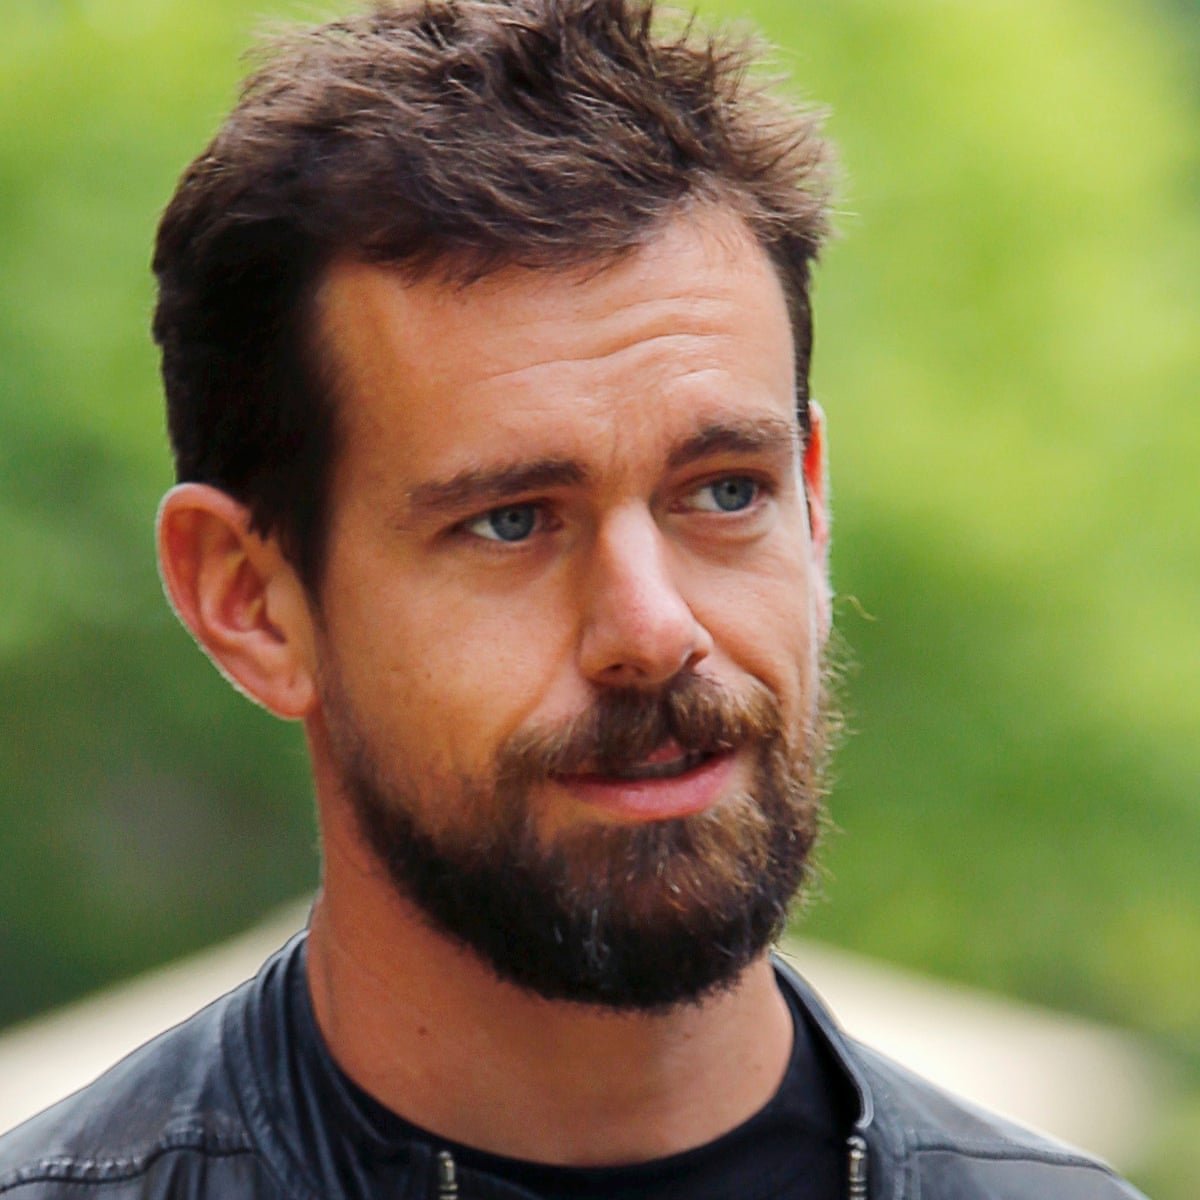 Jack Dorsey Confirmed As Twitter Ceo Technology The Guardian